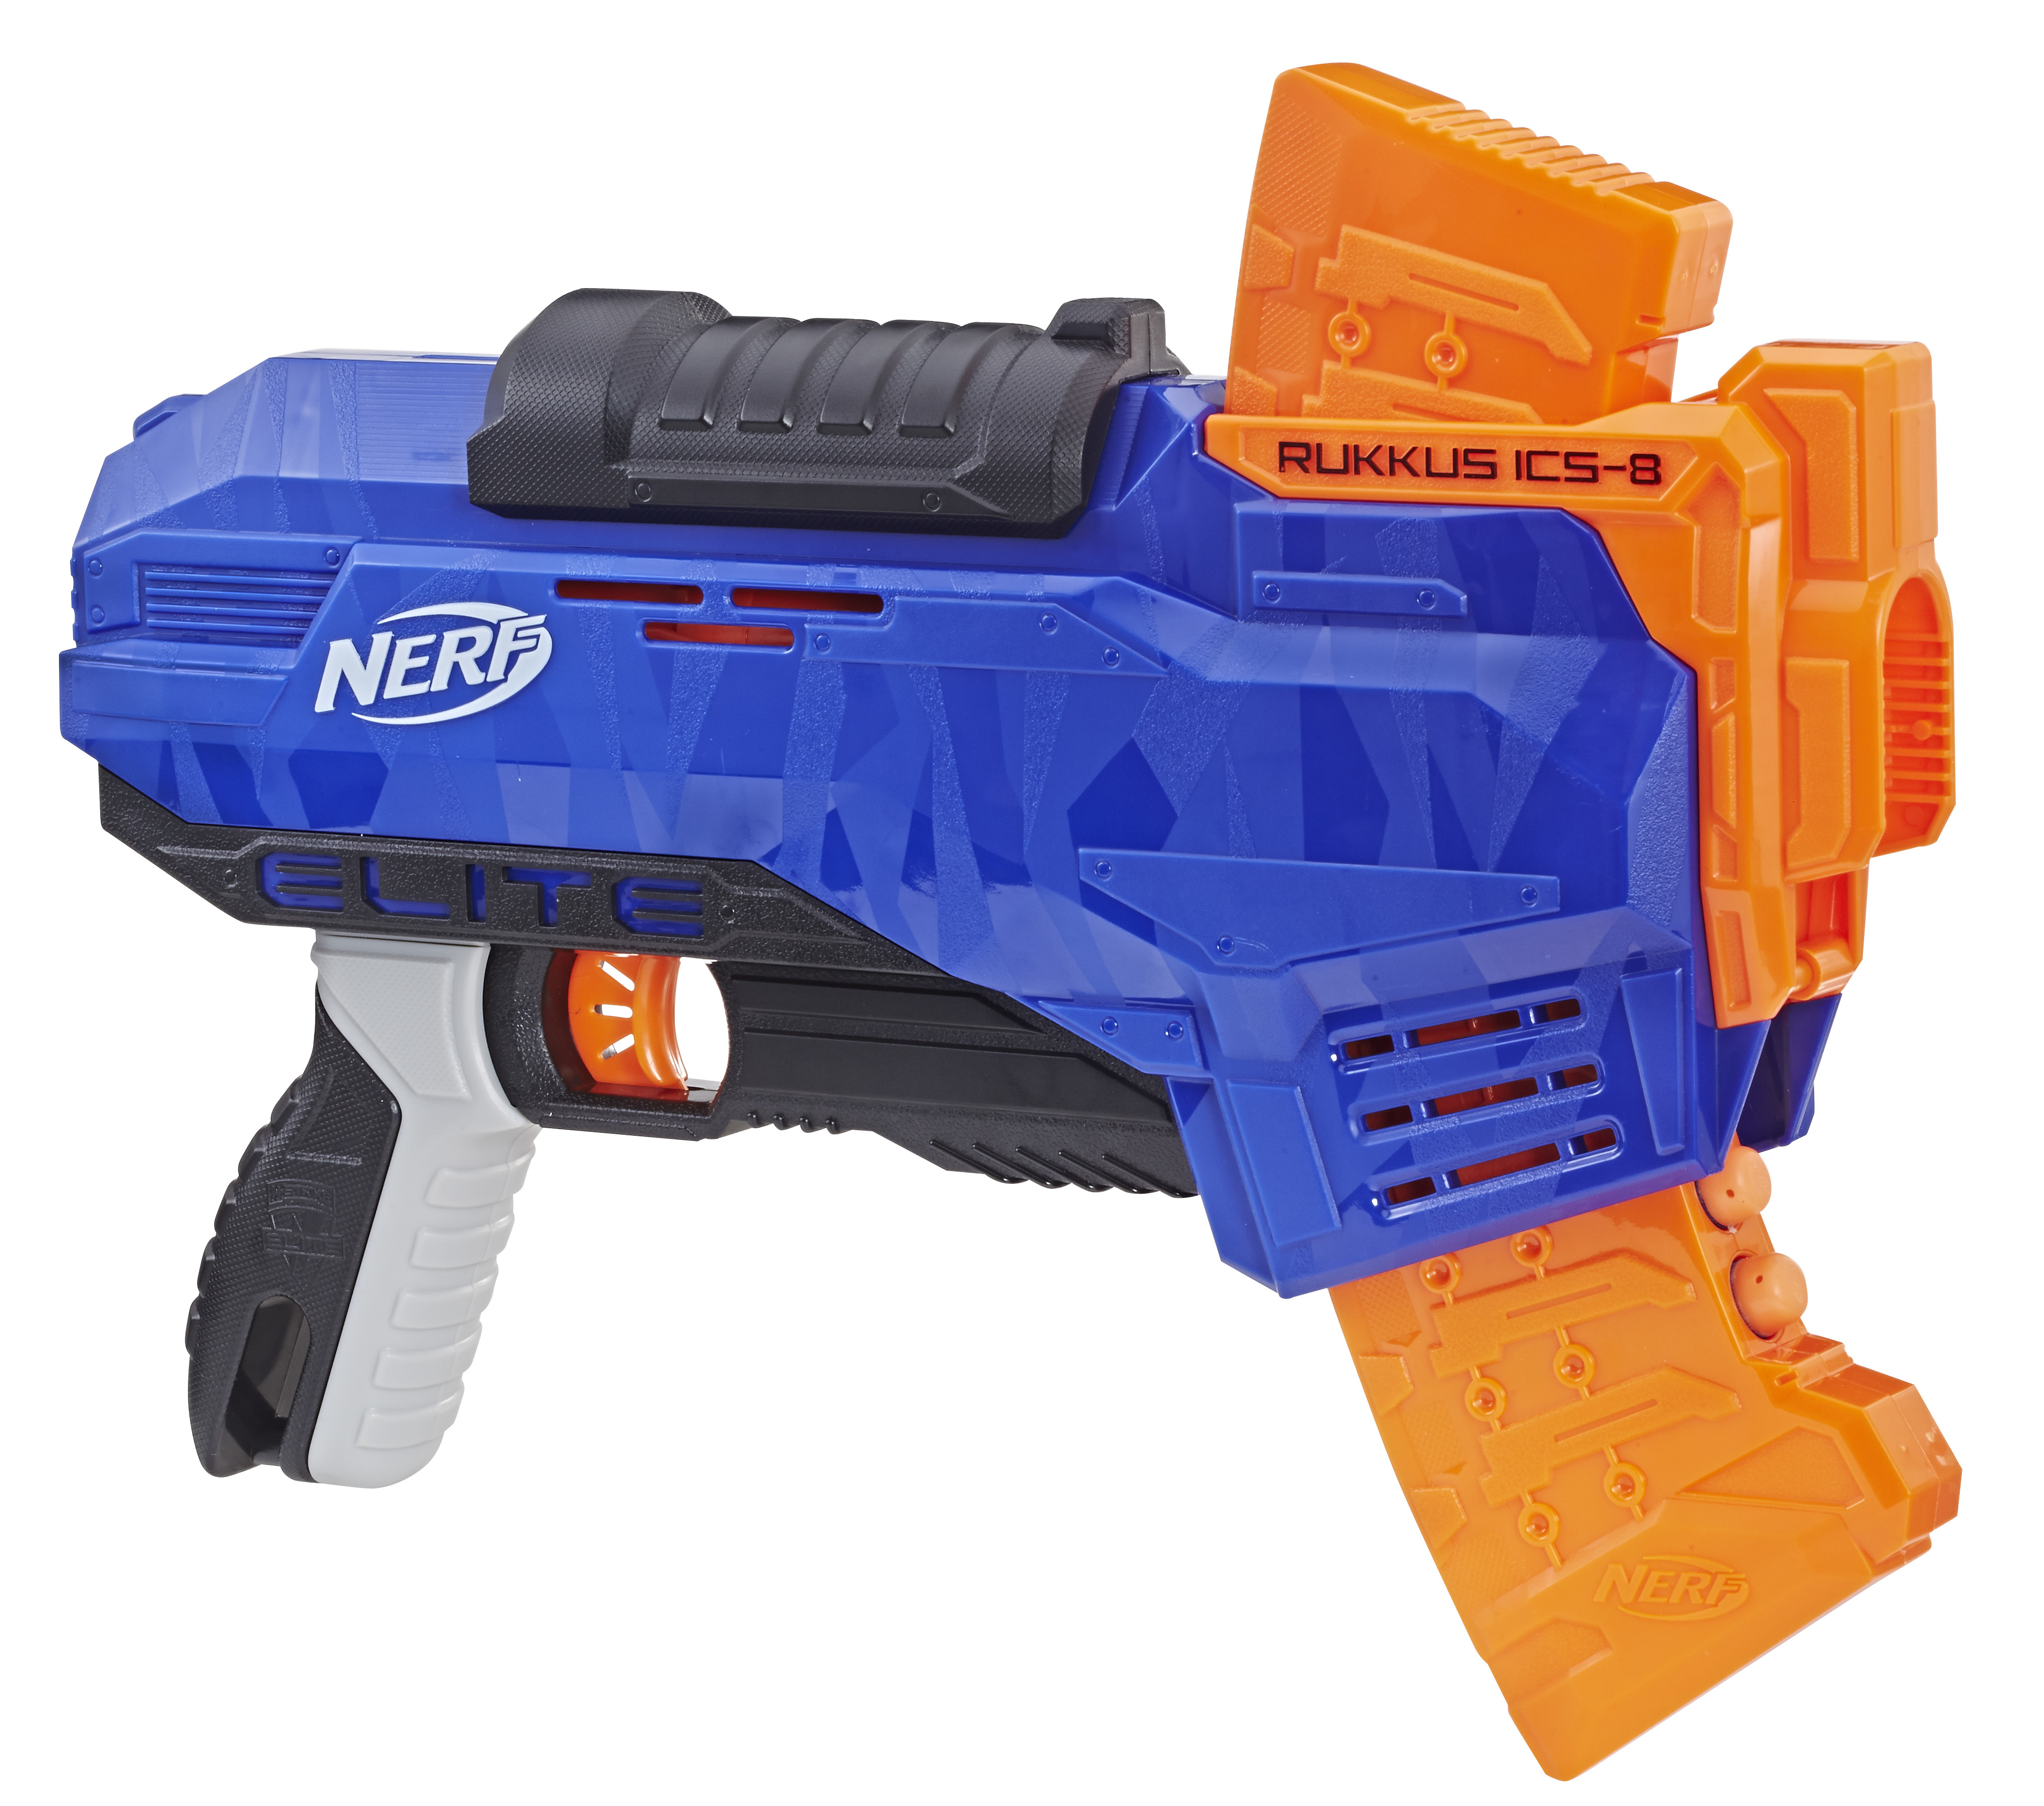 Hasbro Nerf N-Strike Elite Rukkus ICS-8 blue orange